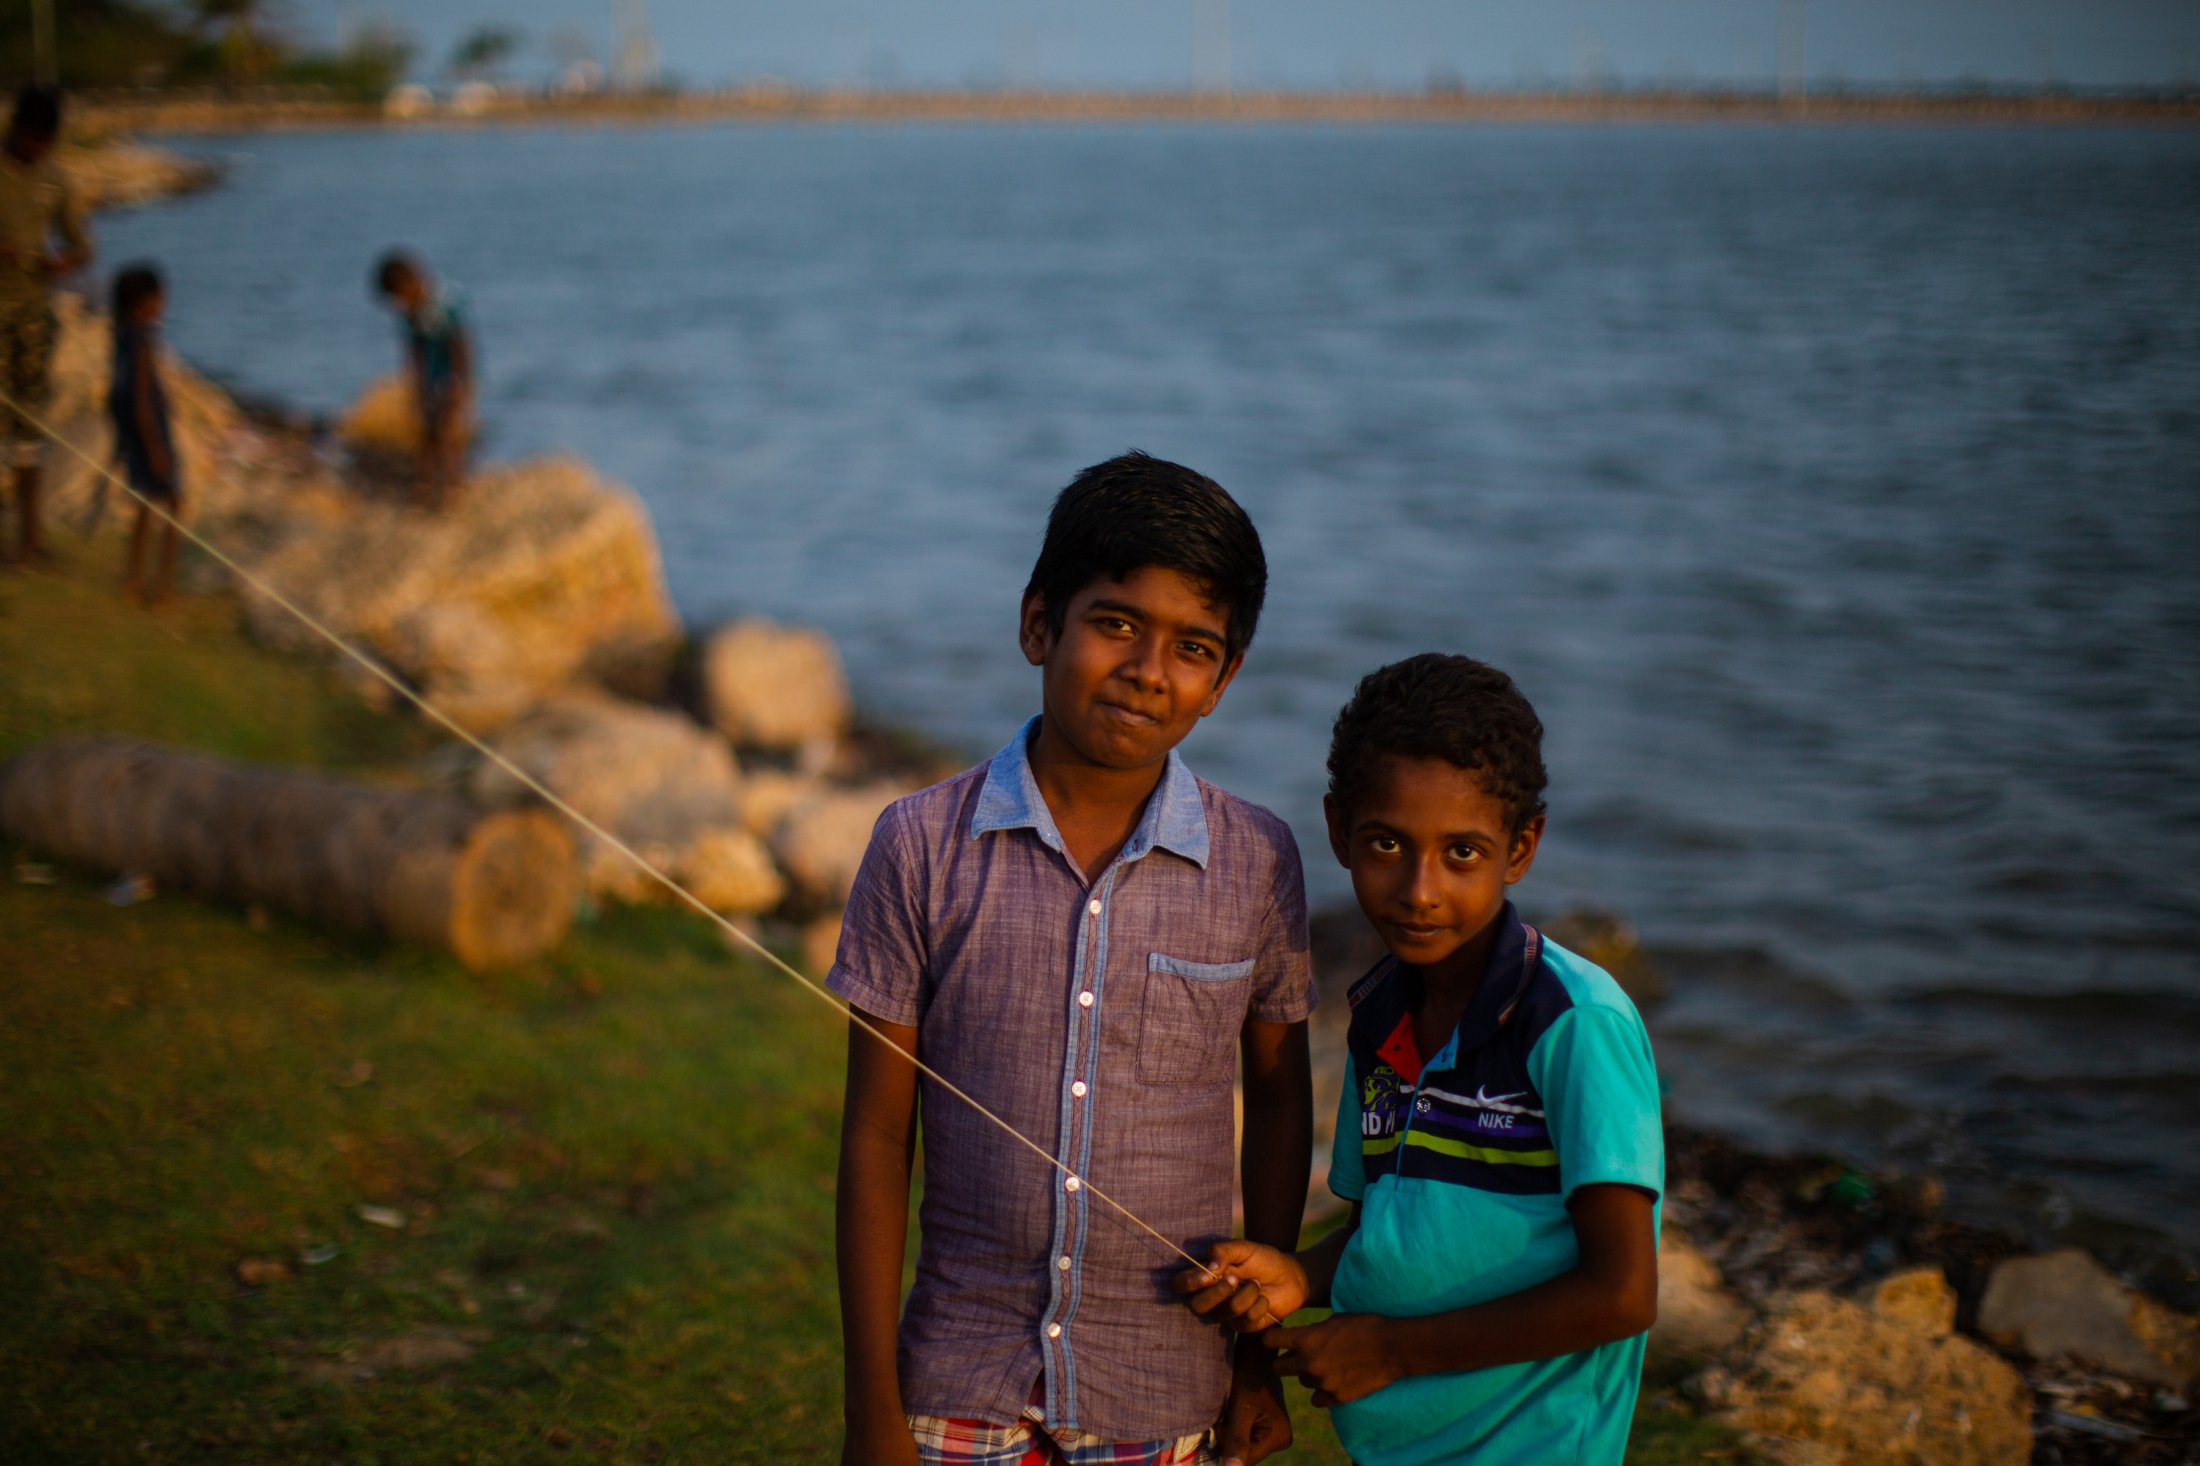 Kite flying at the end of the day in Jaffna (May, 2019)